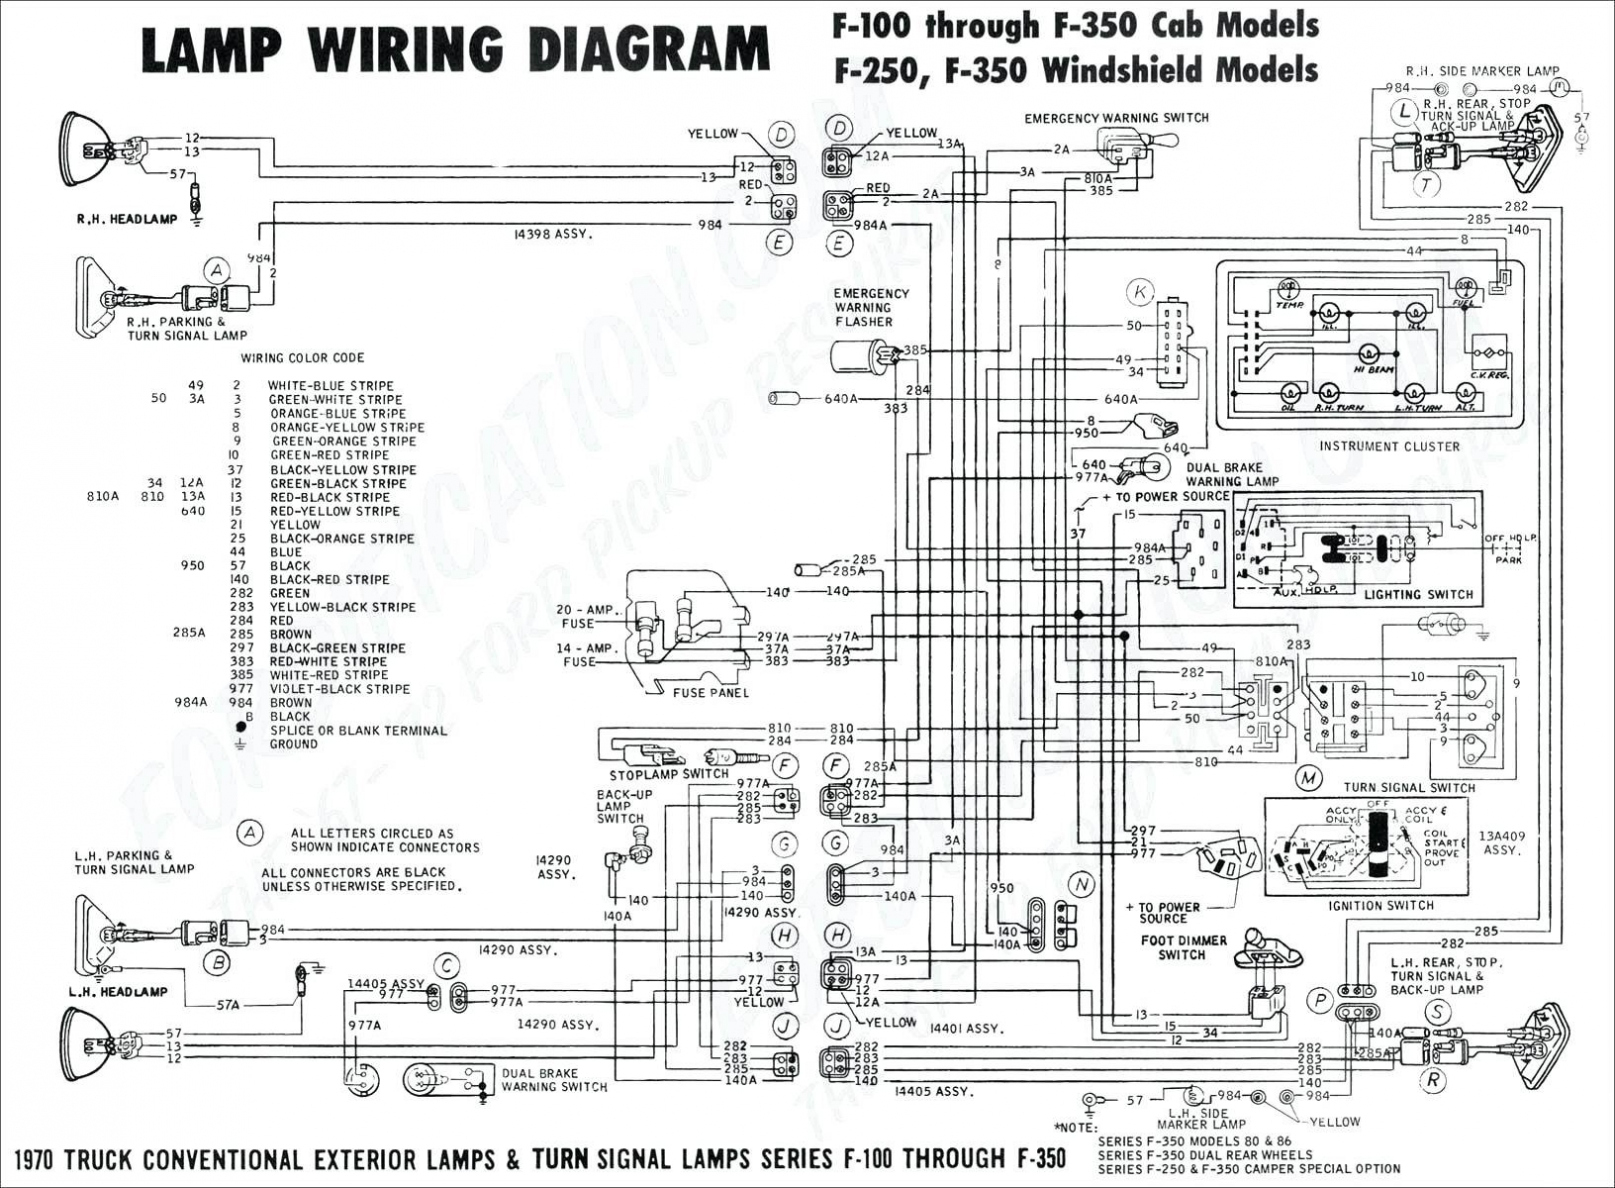 kio wiring harness for 1986 wiring diagramsford f 150 straight 6 engine diagram